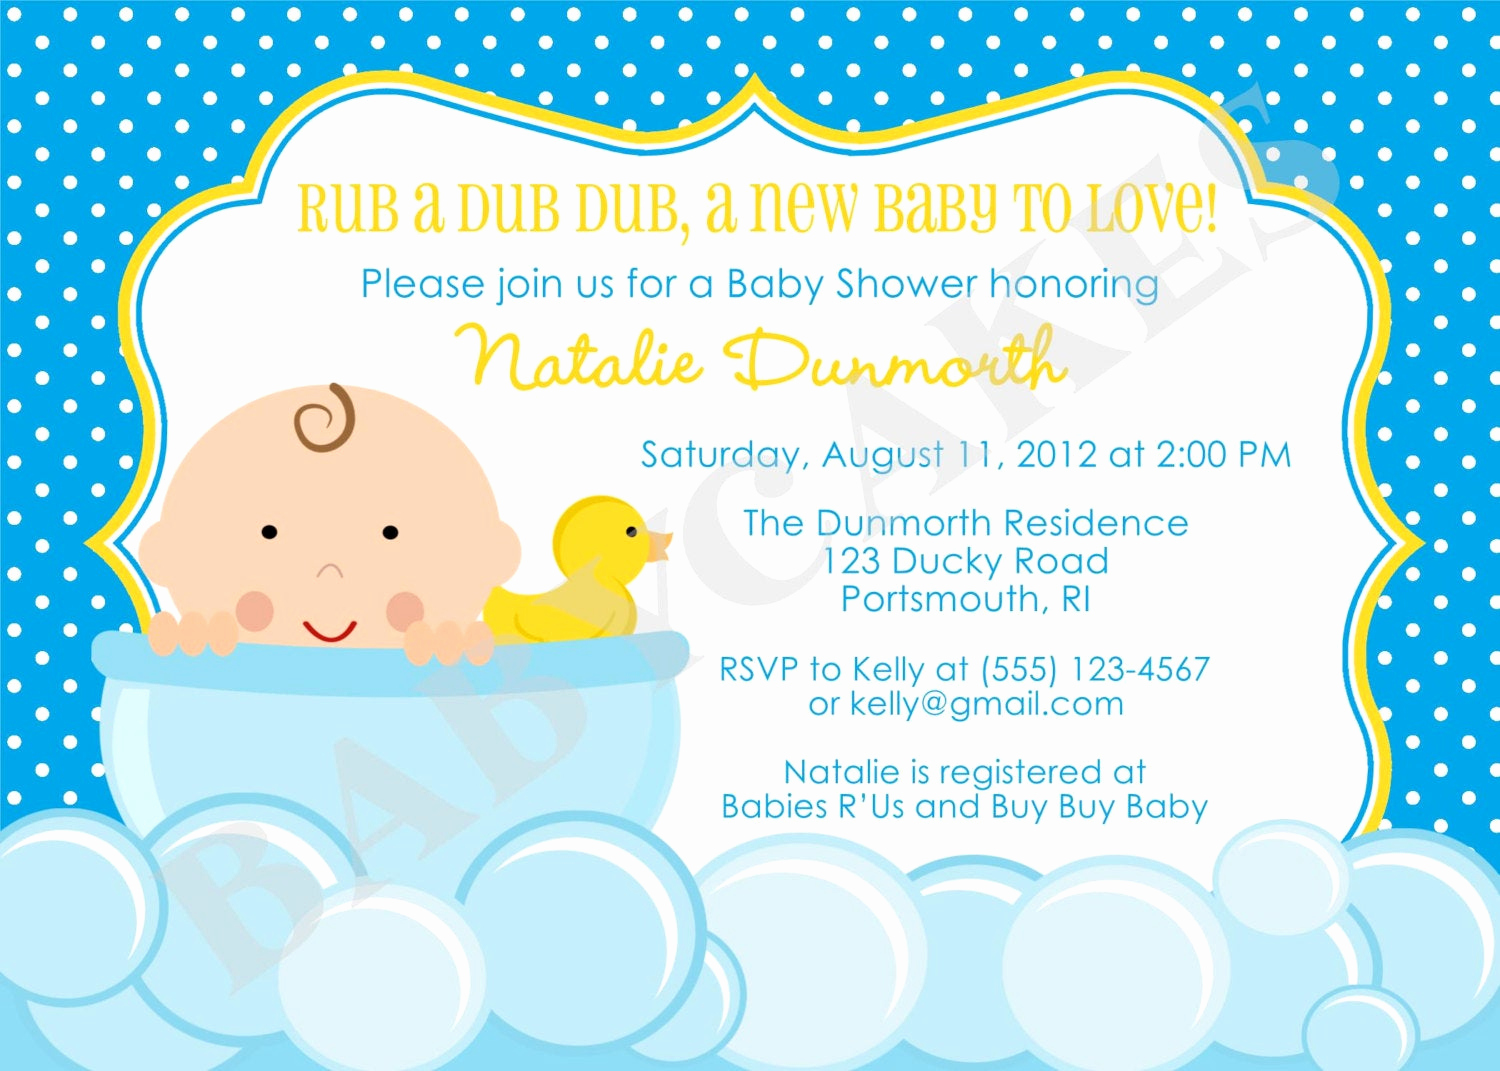 Rubber Duck Baby Shower Invitation Awesome Rubber Ducky Baby Shower Invitation Diy Print Your Own